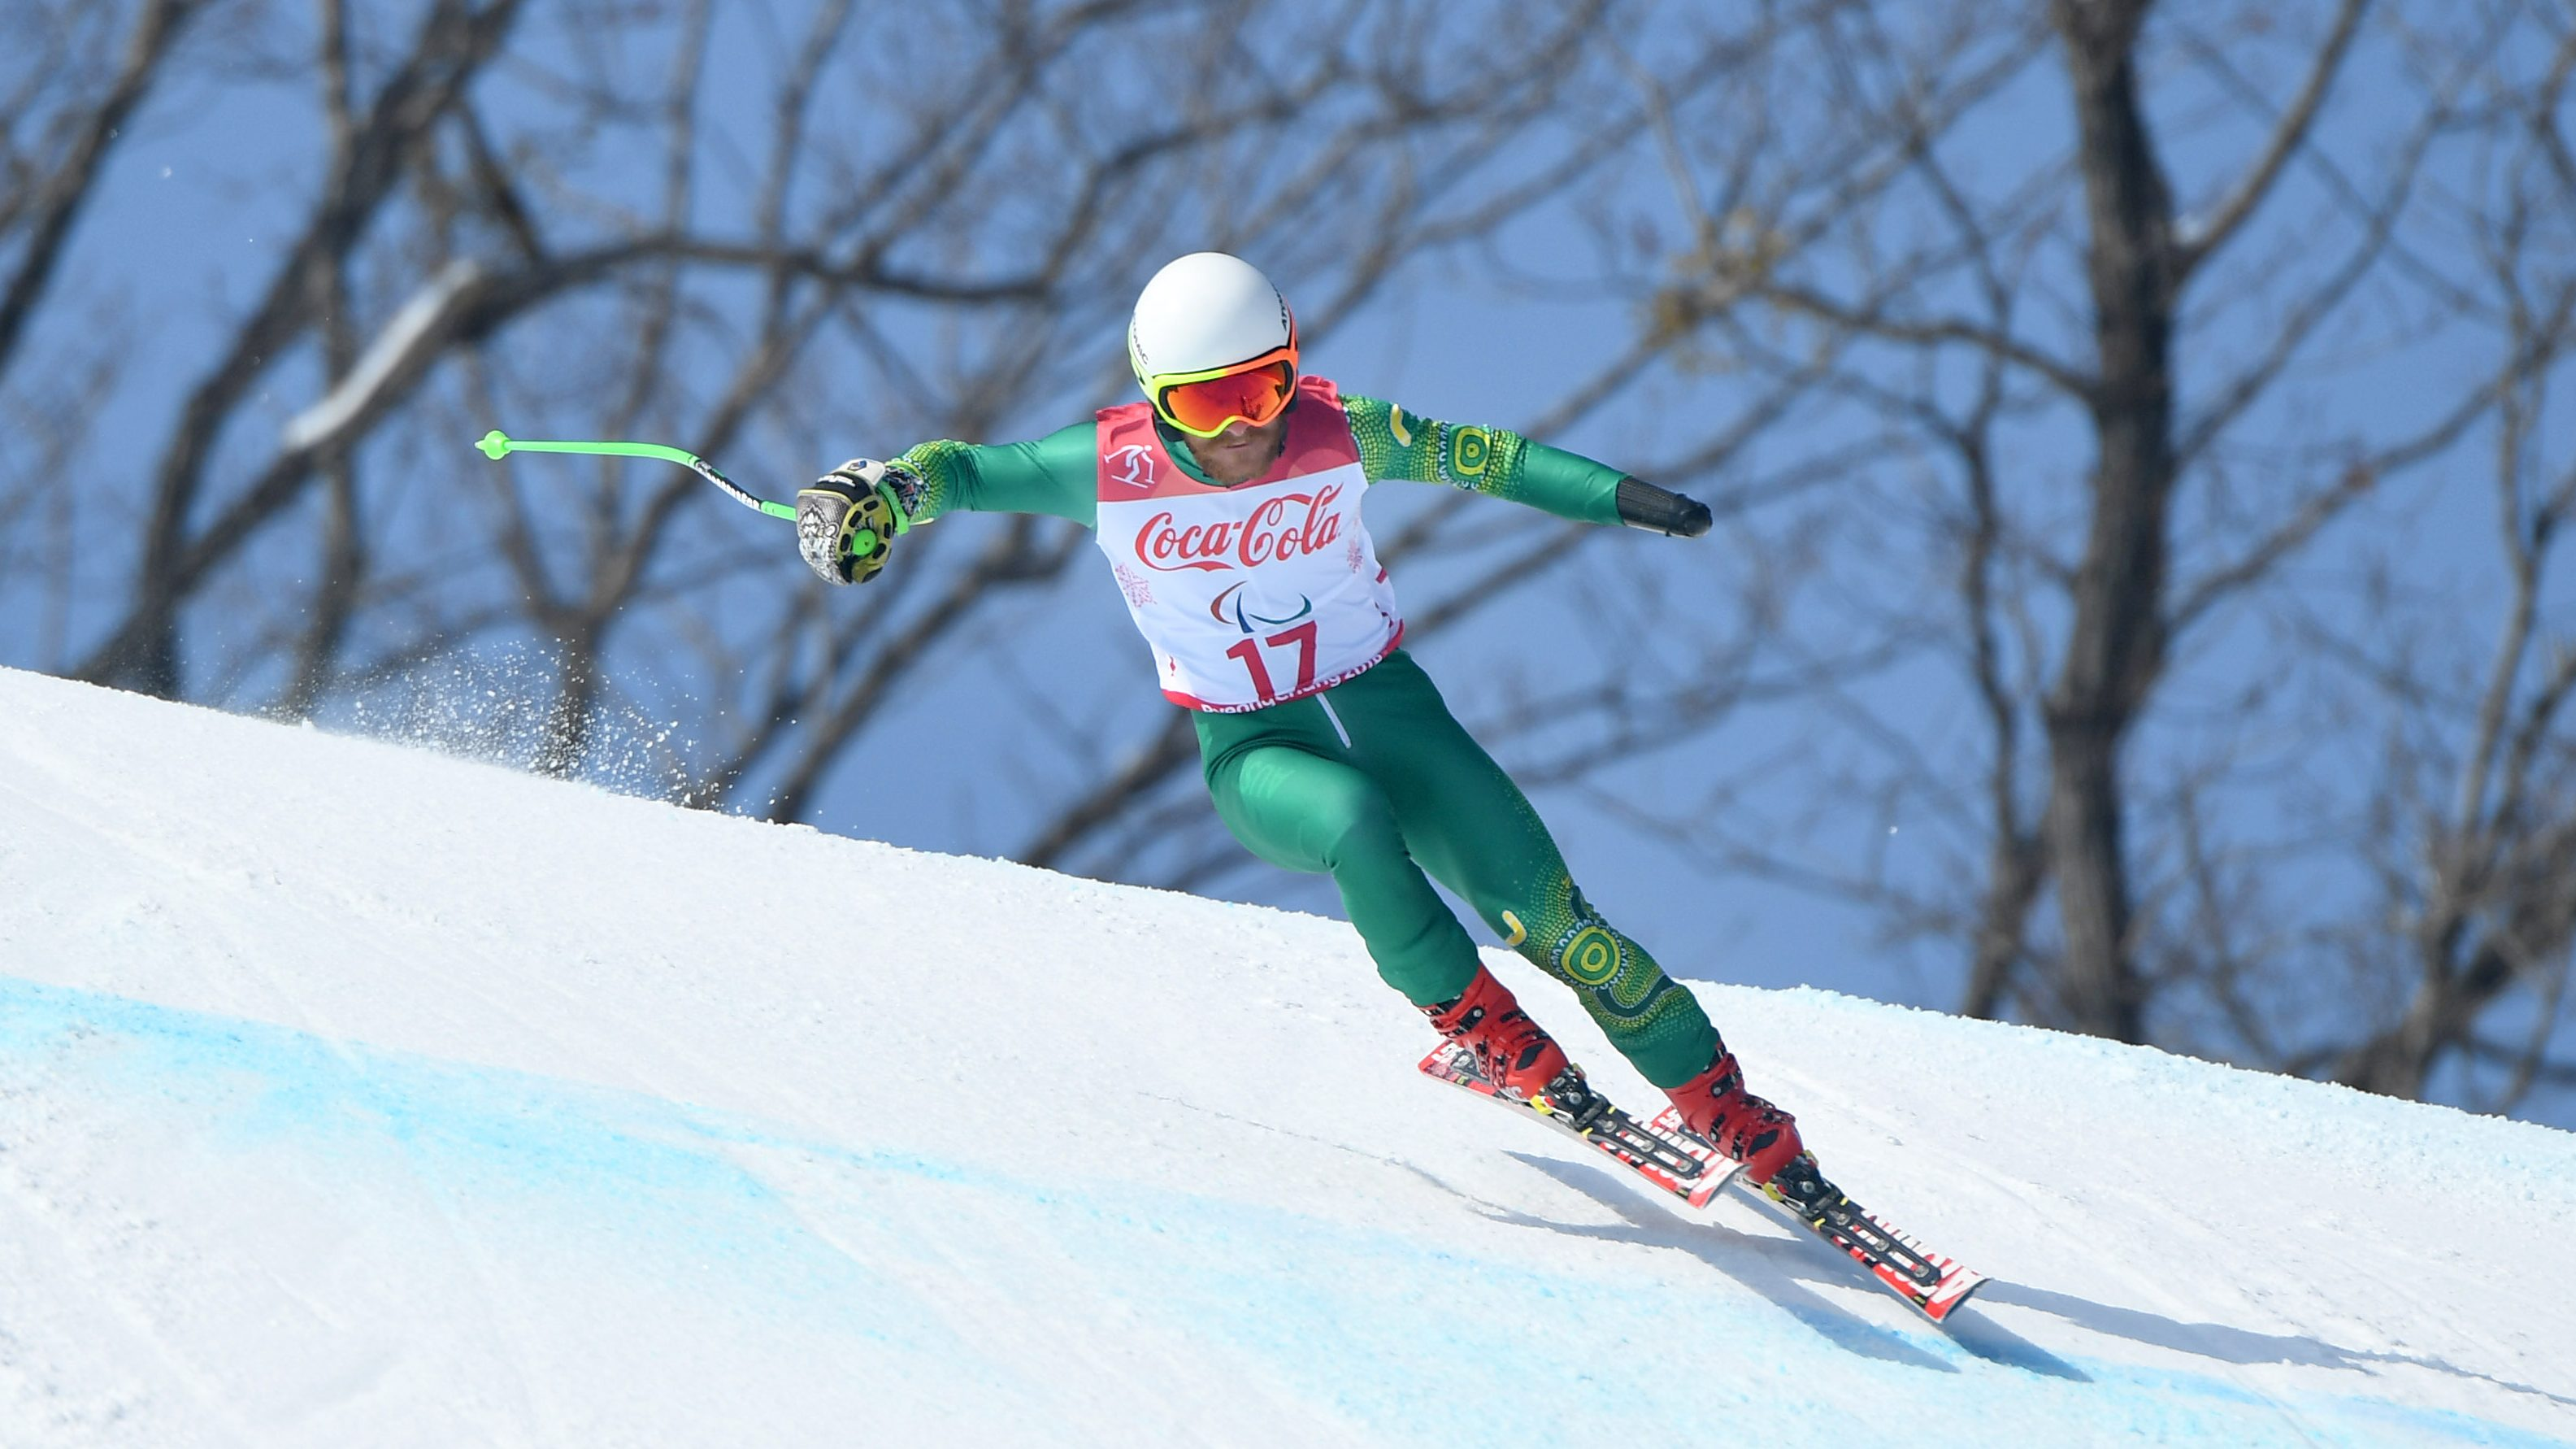 Australians dust themselves off to focus on Super G